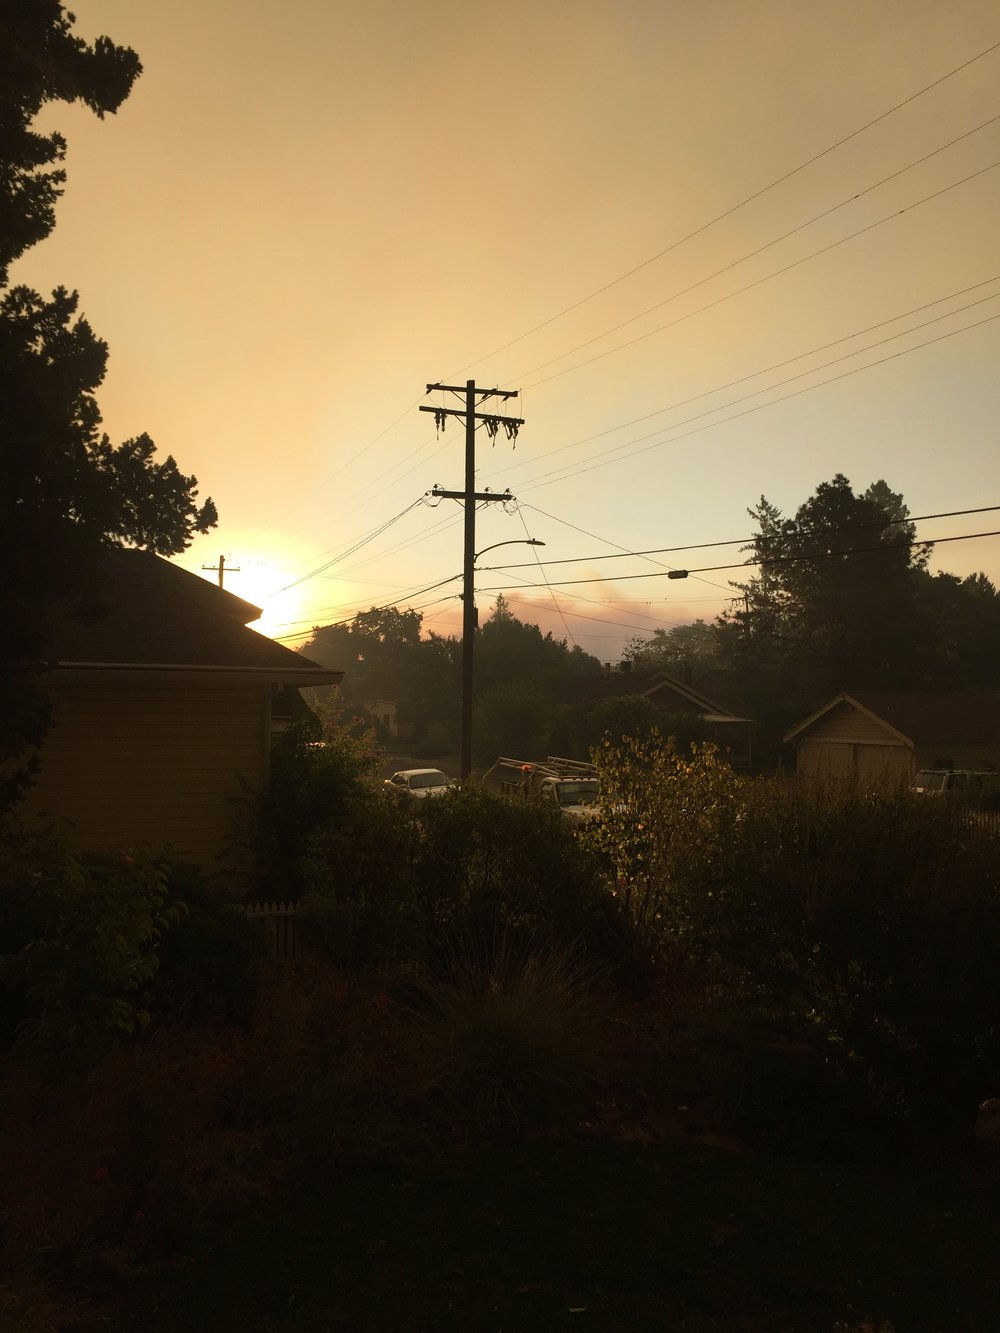 Eastern skies over Santa Rosa, CA at my downtown home. Monday, October 9th, 2017